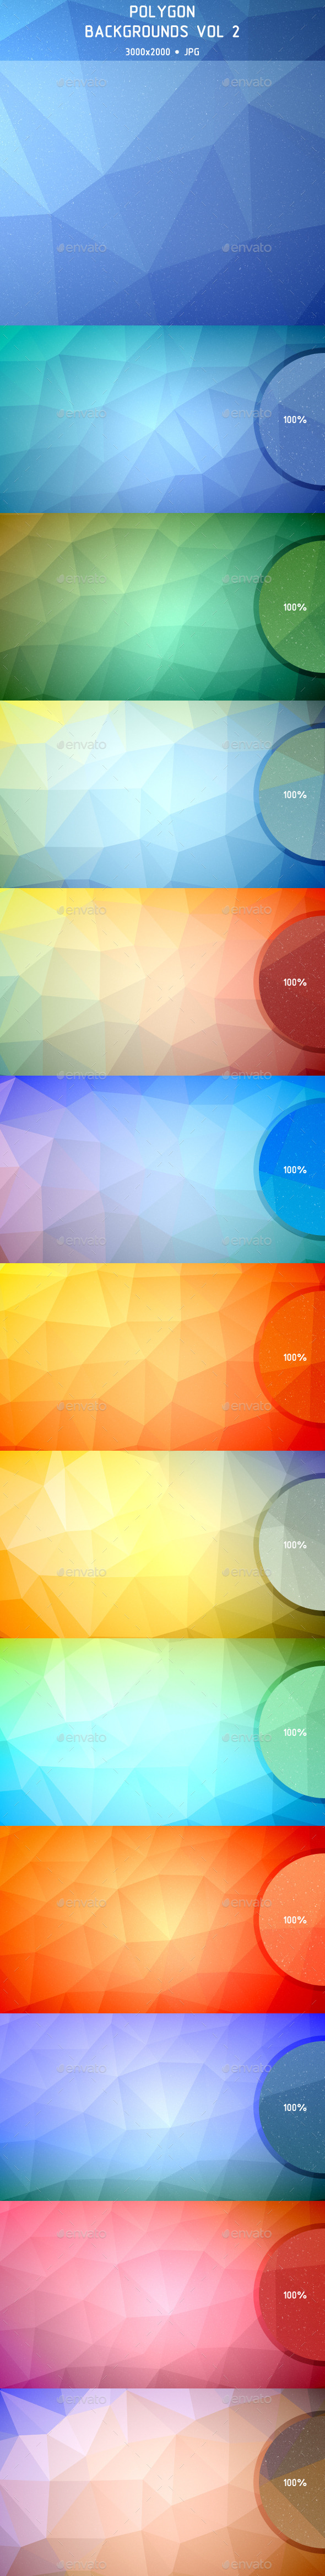 Polygon Backgrounds Vol 2 - Abstract Backgrounds